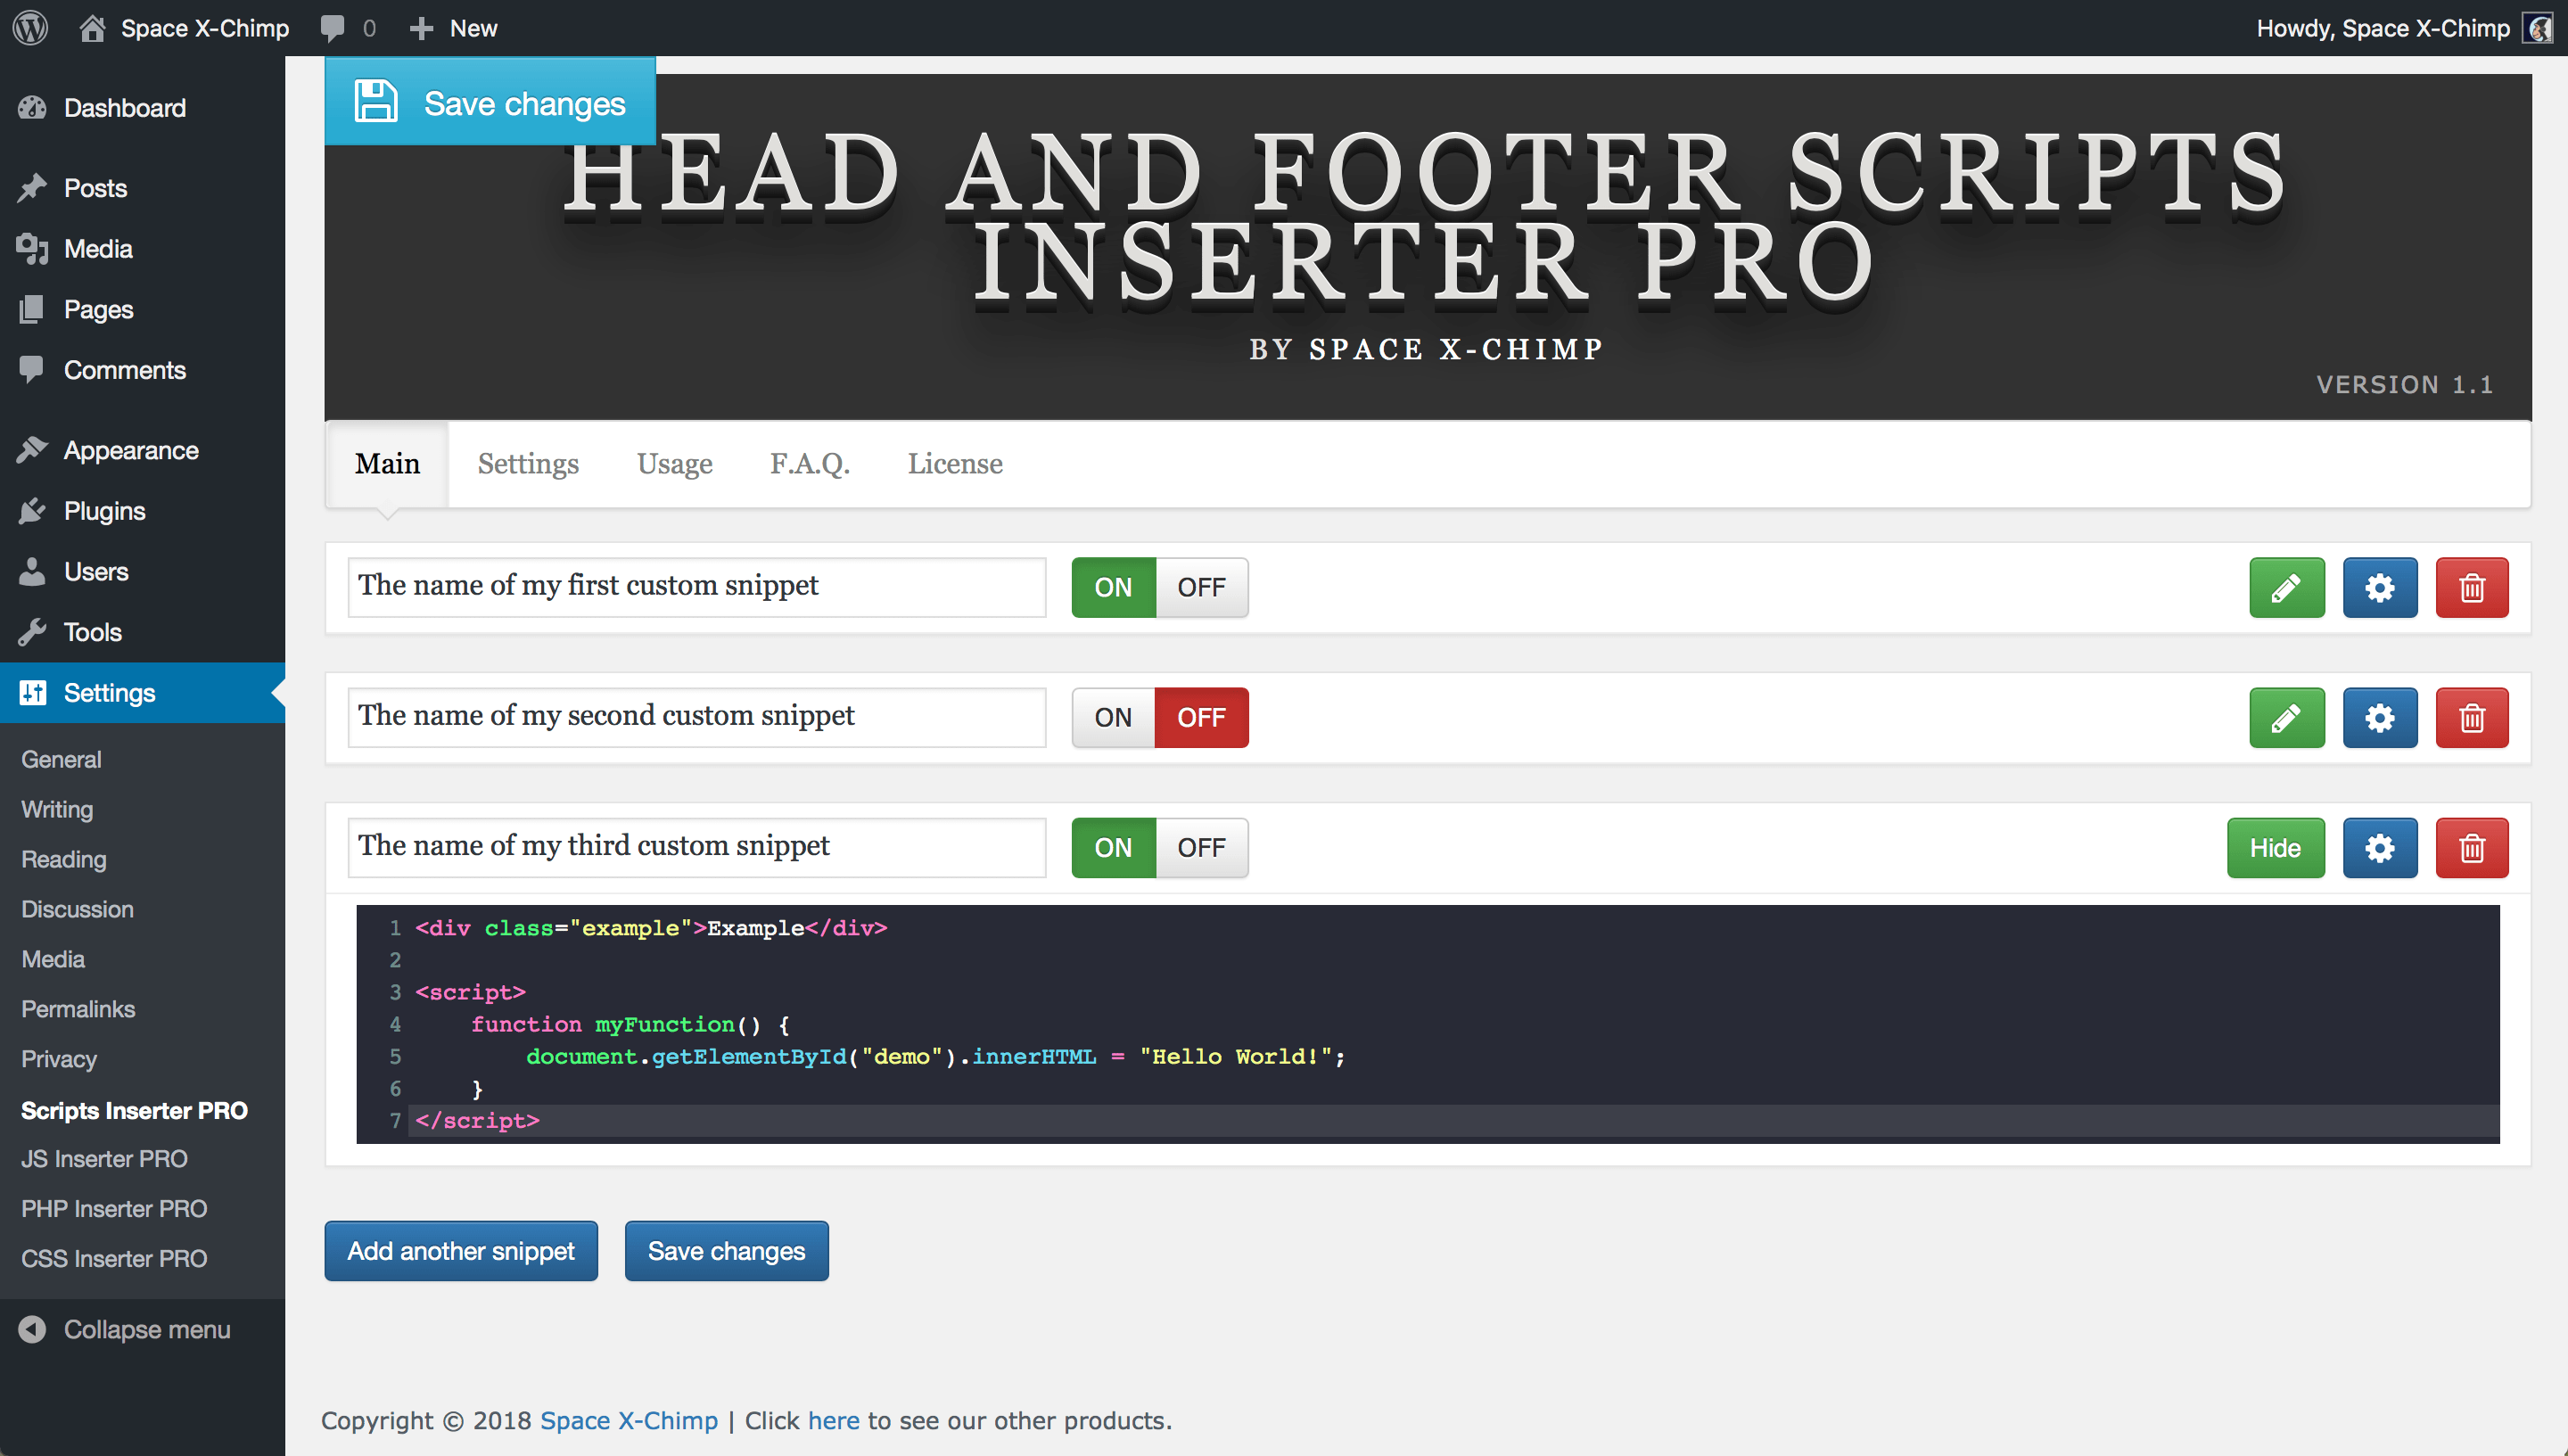 Head and Footer Scripts Inserter PRO